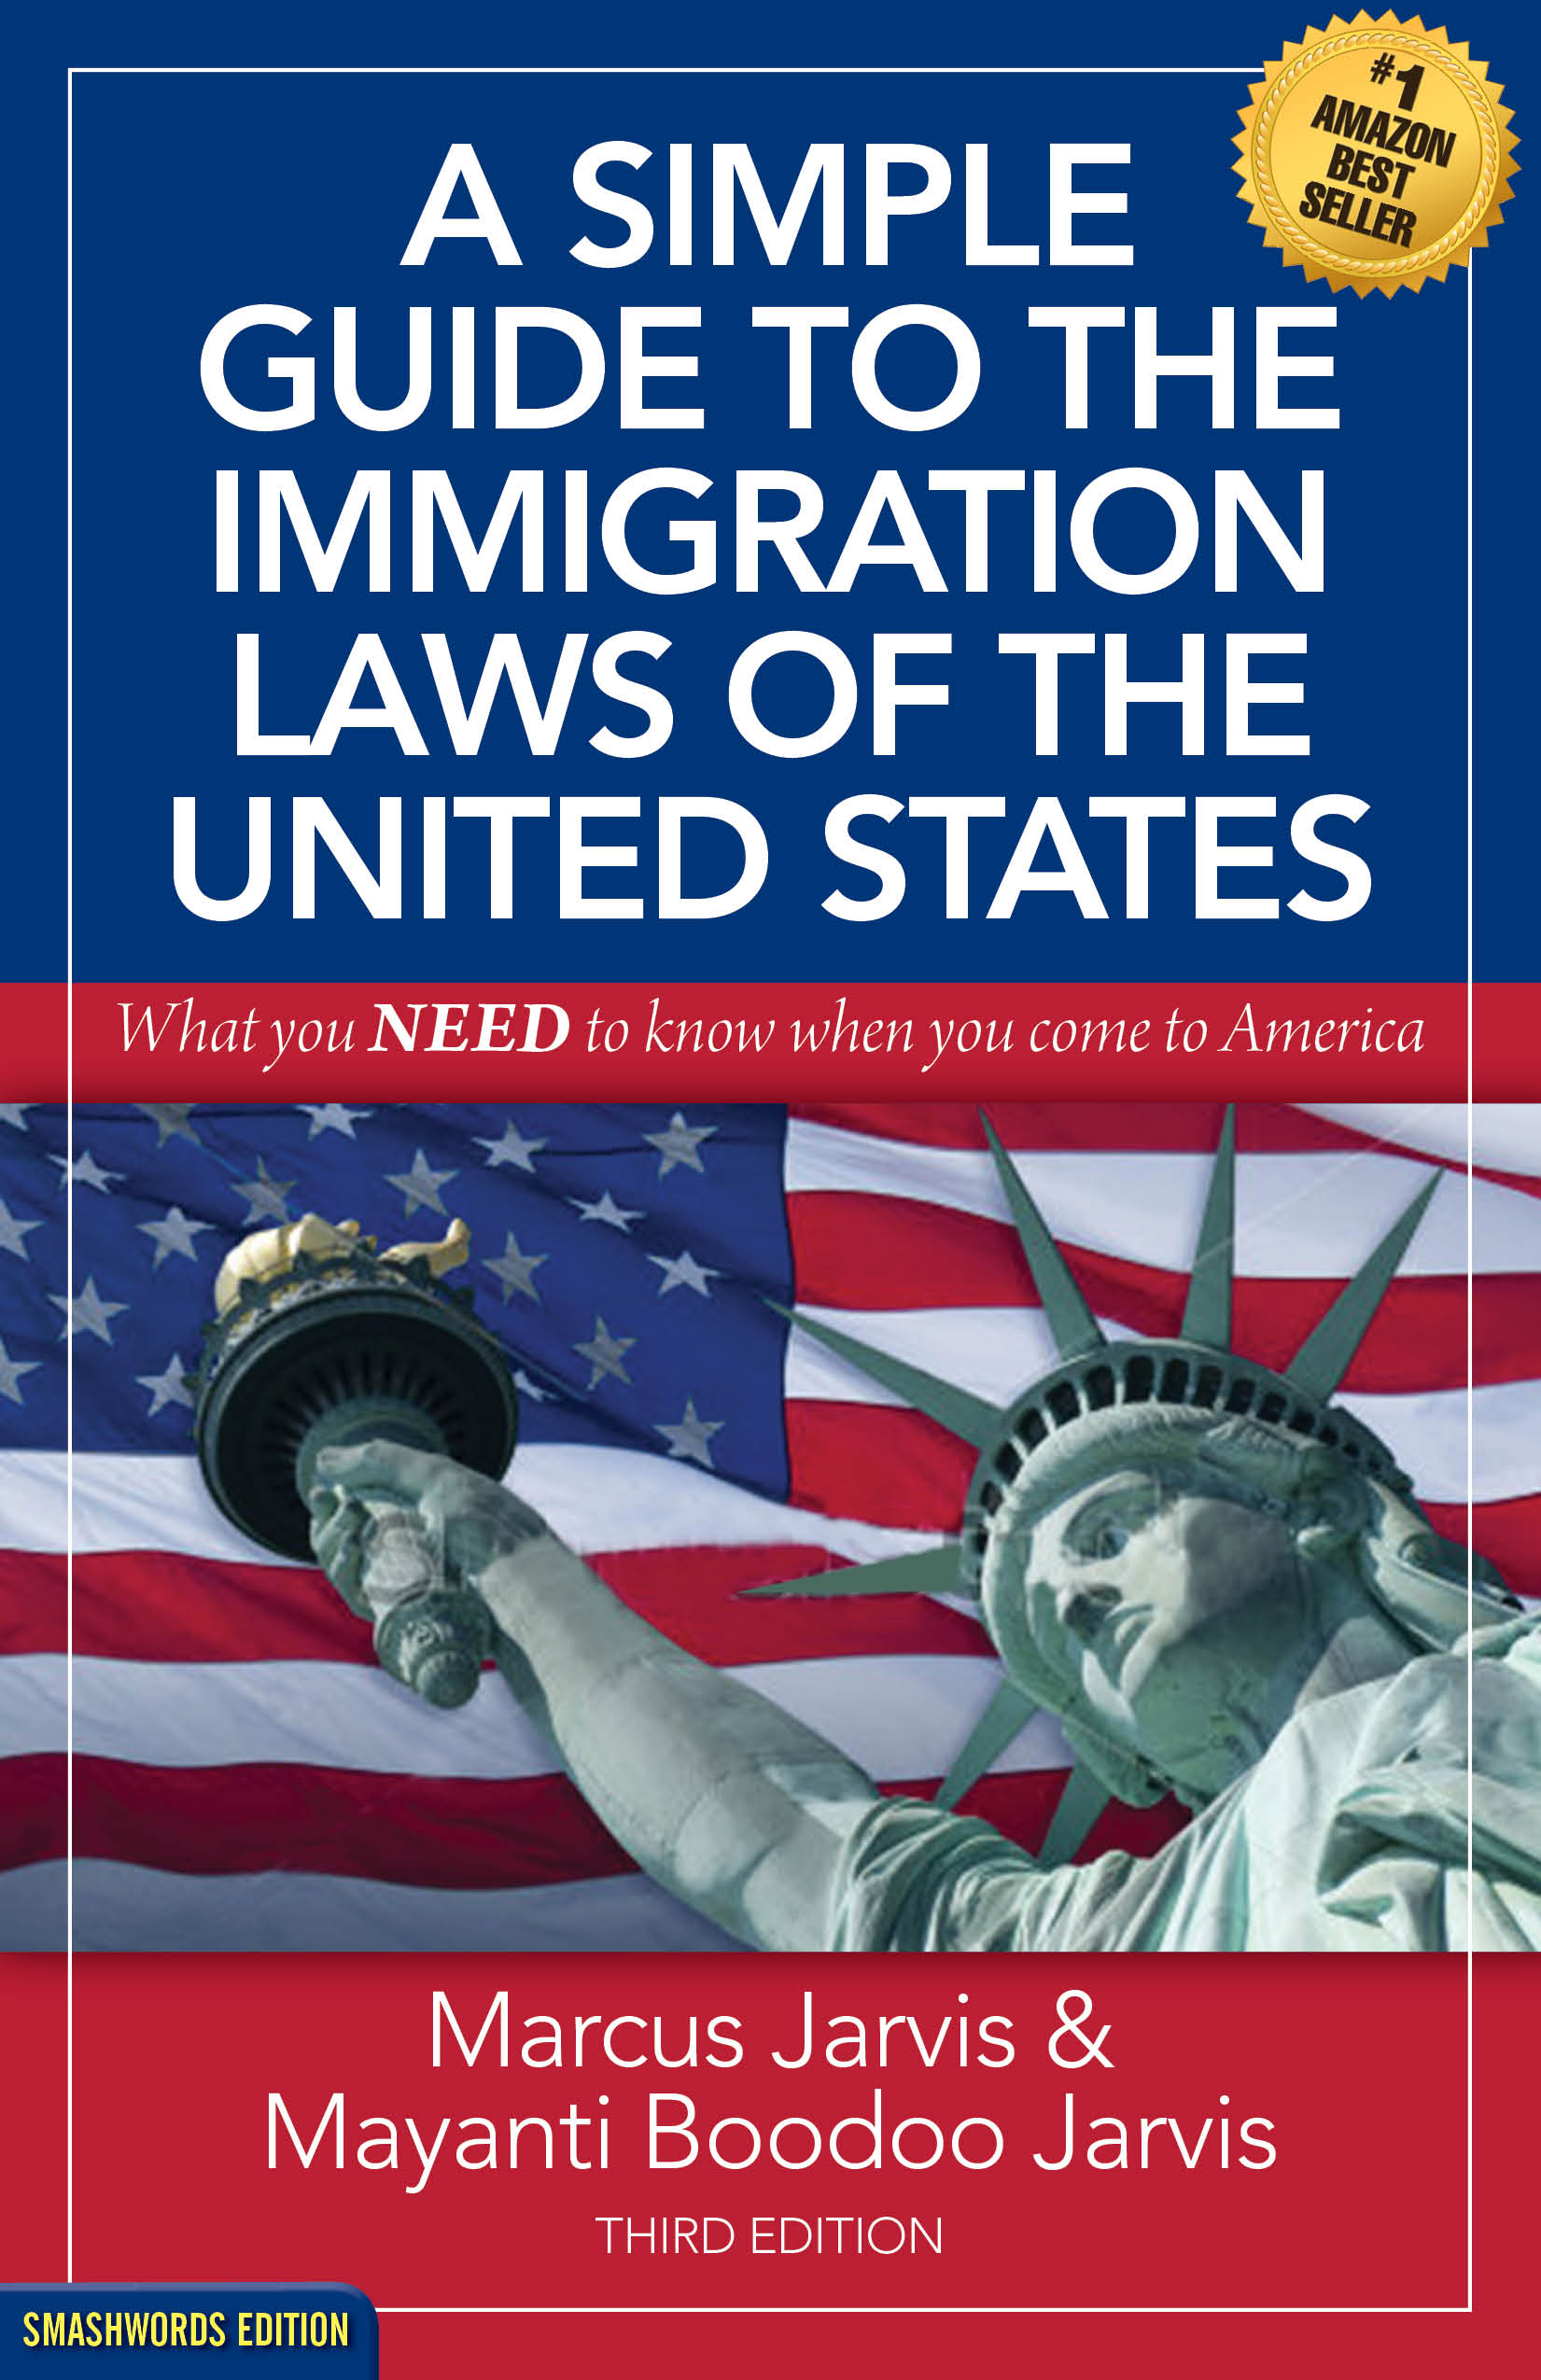 an introduction to the federal law immigration to the united states